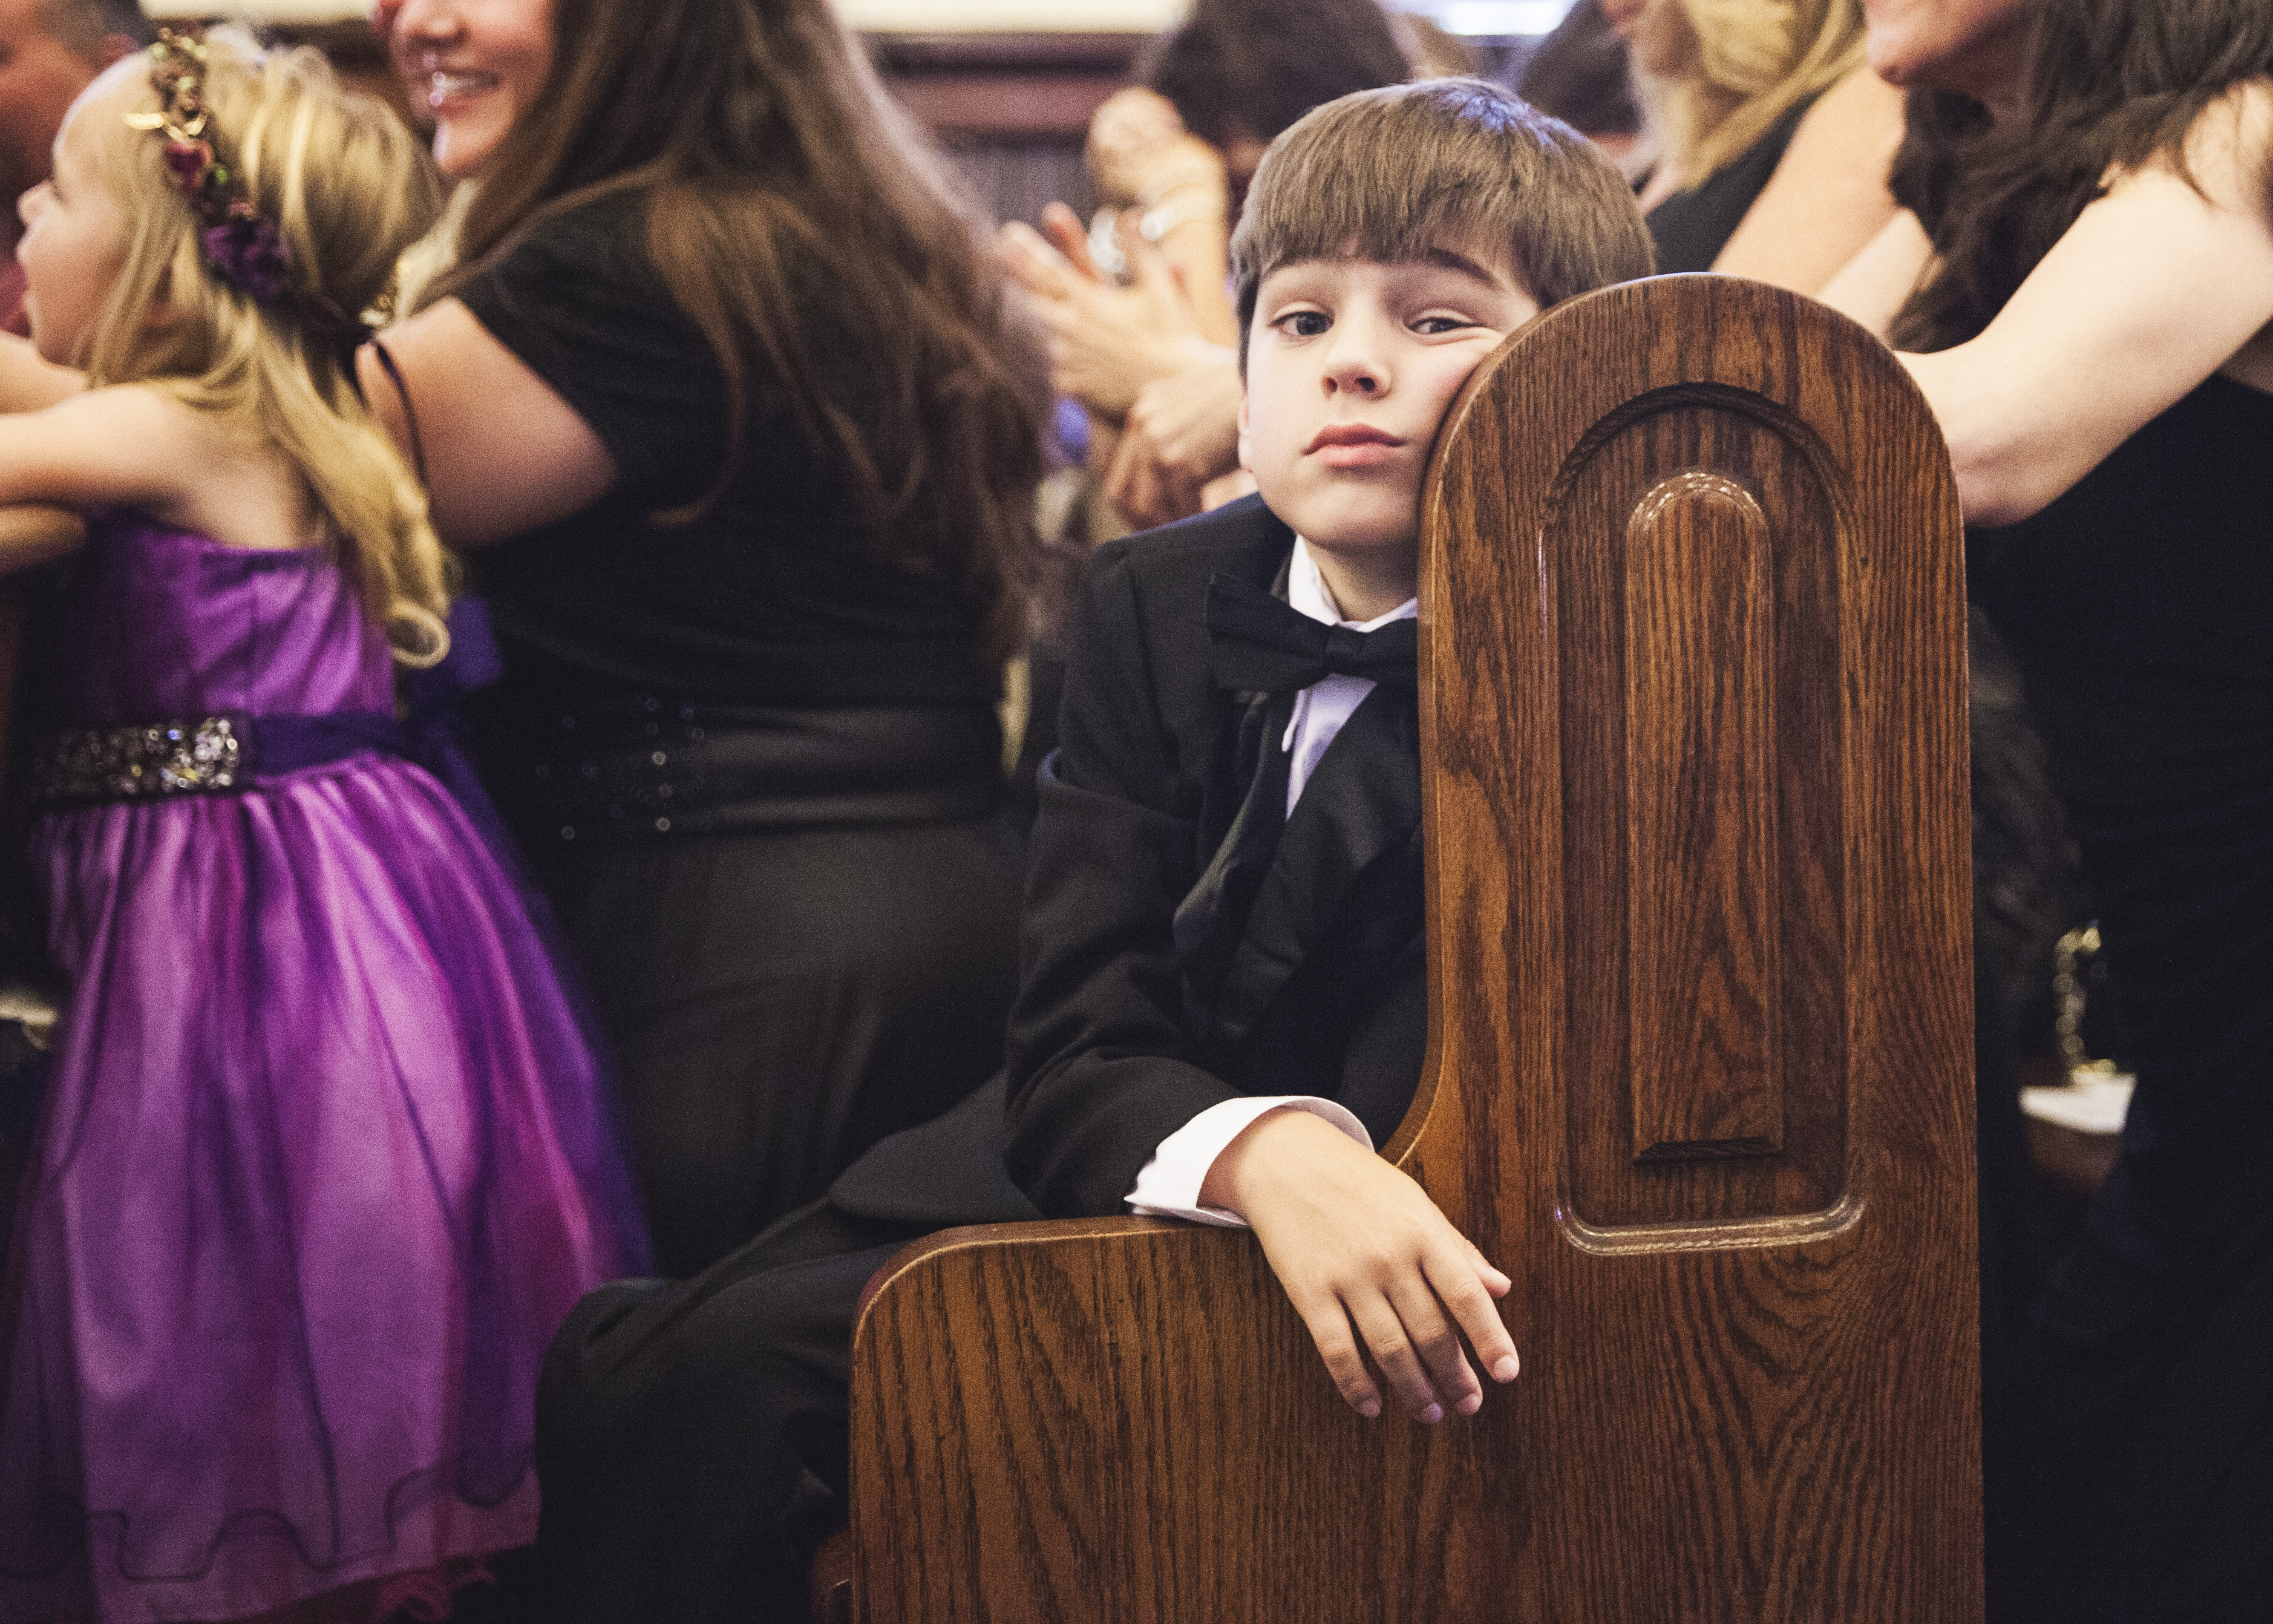 bored kid at wedding. Photos from the Harty. http://www.photosfromtheharty.com/